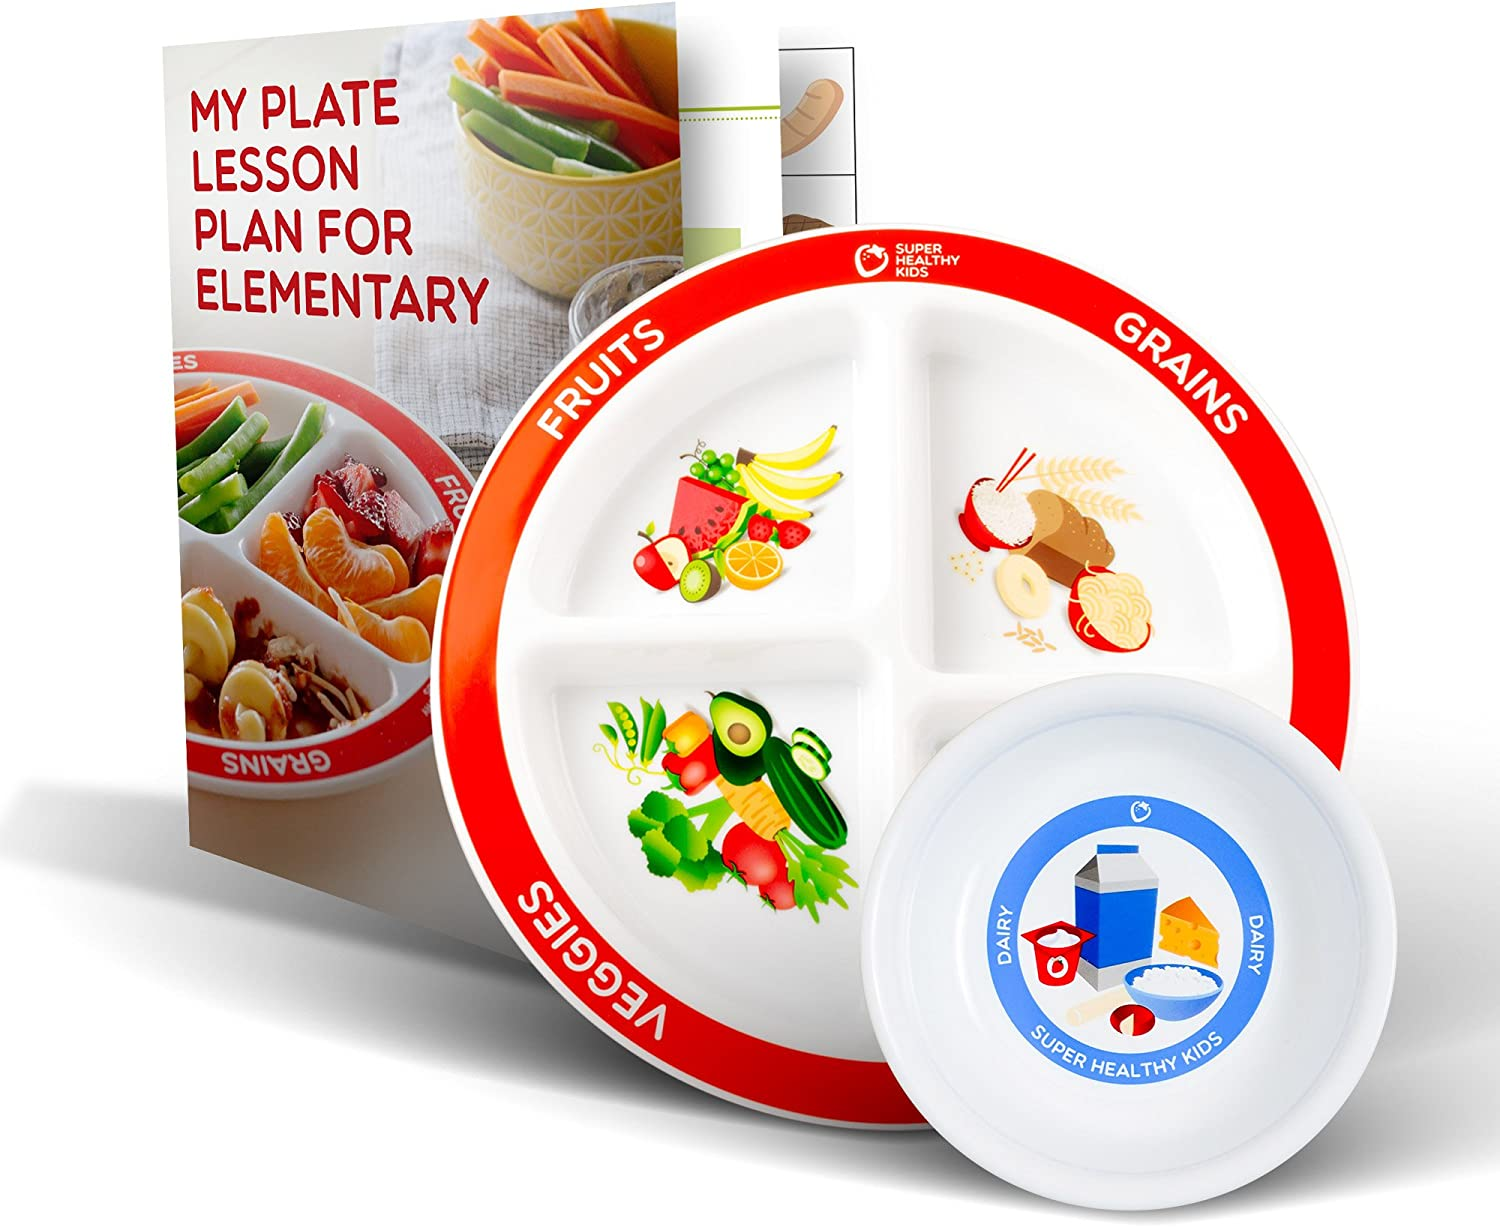 Health Beet Portion Plate Choose MyPlate for Kids - Kids Plates with Dividers and Nutrition Portions Plus Dairy Bowl - Includes Elementary Healthy Eating Lesson Plan for Teachers (1 Plate, 1 Bowl)